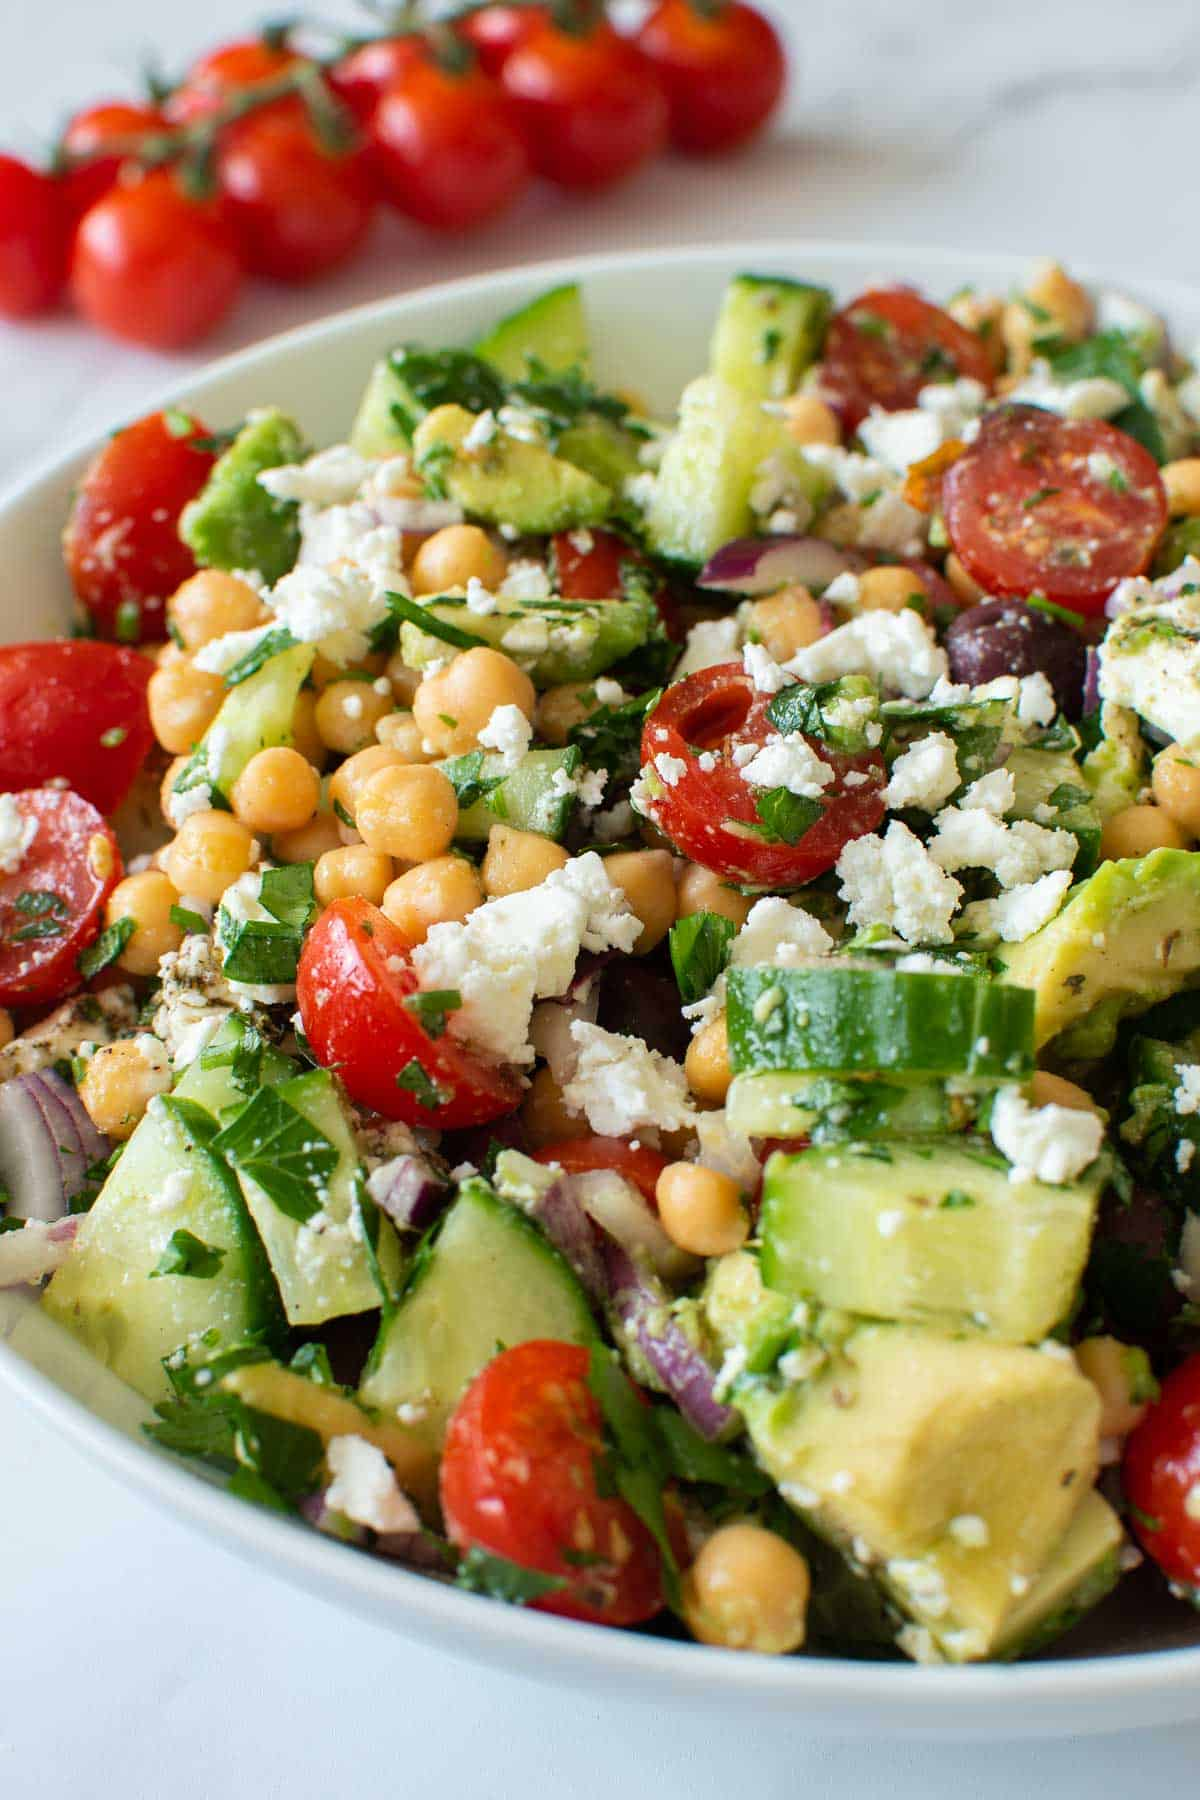 Close up of an avocado chickpea salad with vegetables.